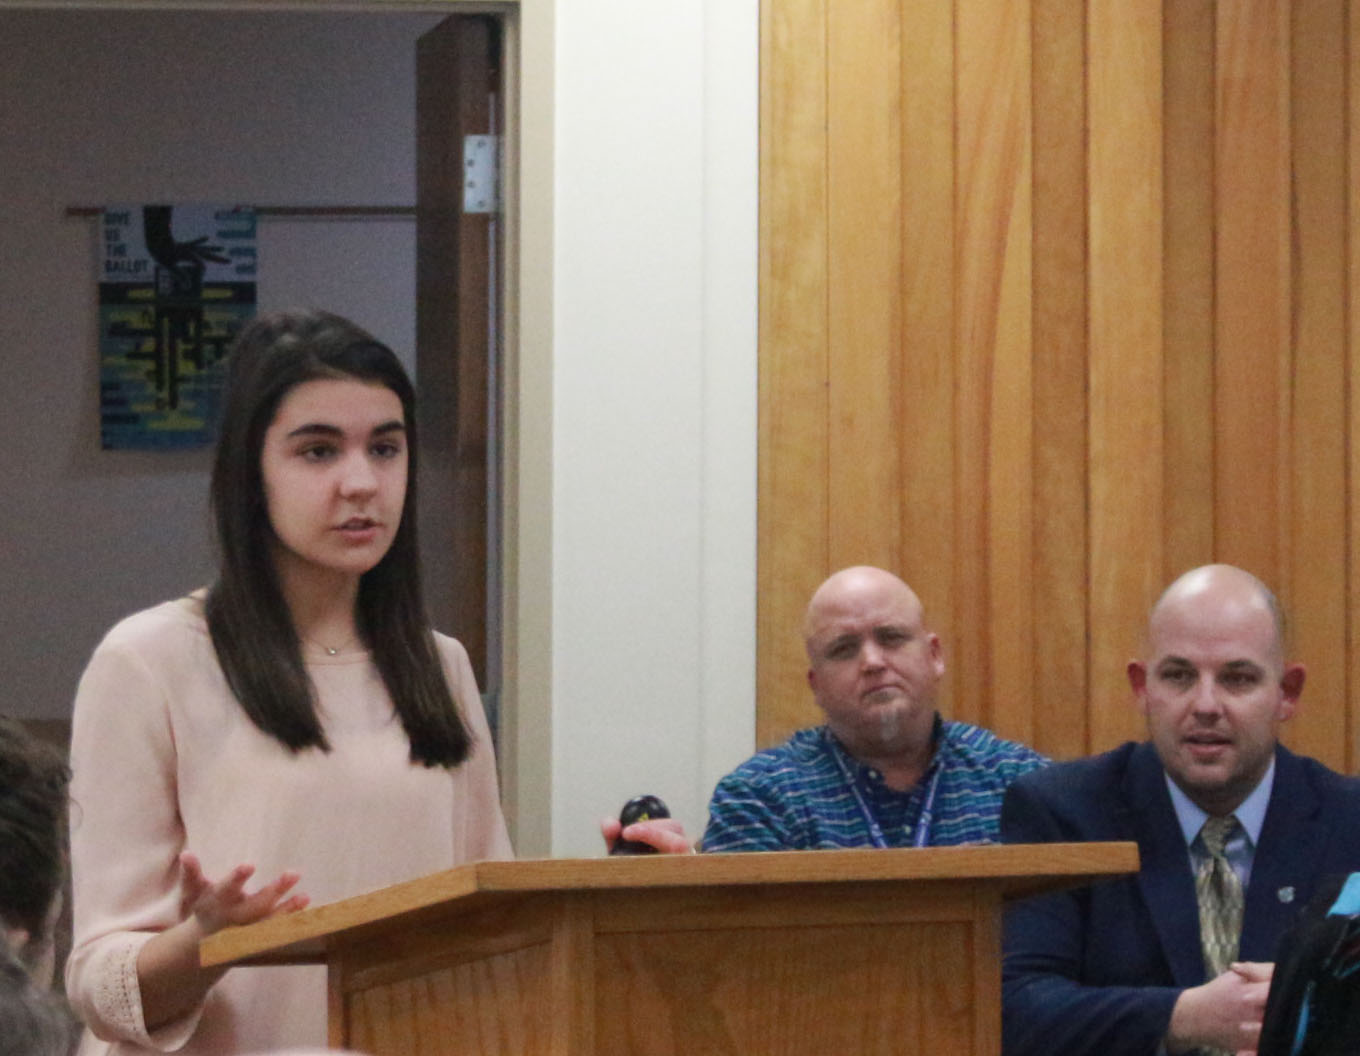 Senior Hannah Dudsic speaks in front of the Superior Board regarding senior project changes on Feb.3. The board office decision is still pending, if approved the changes to the senior projects would be made fr the first time in 15 years.